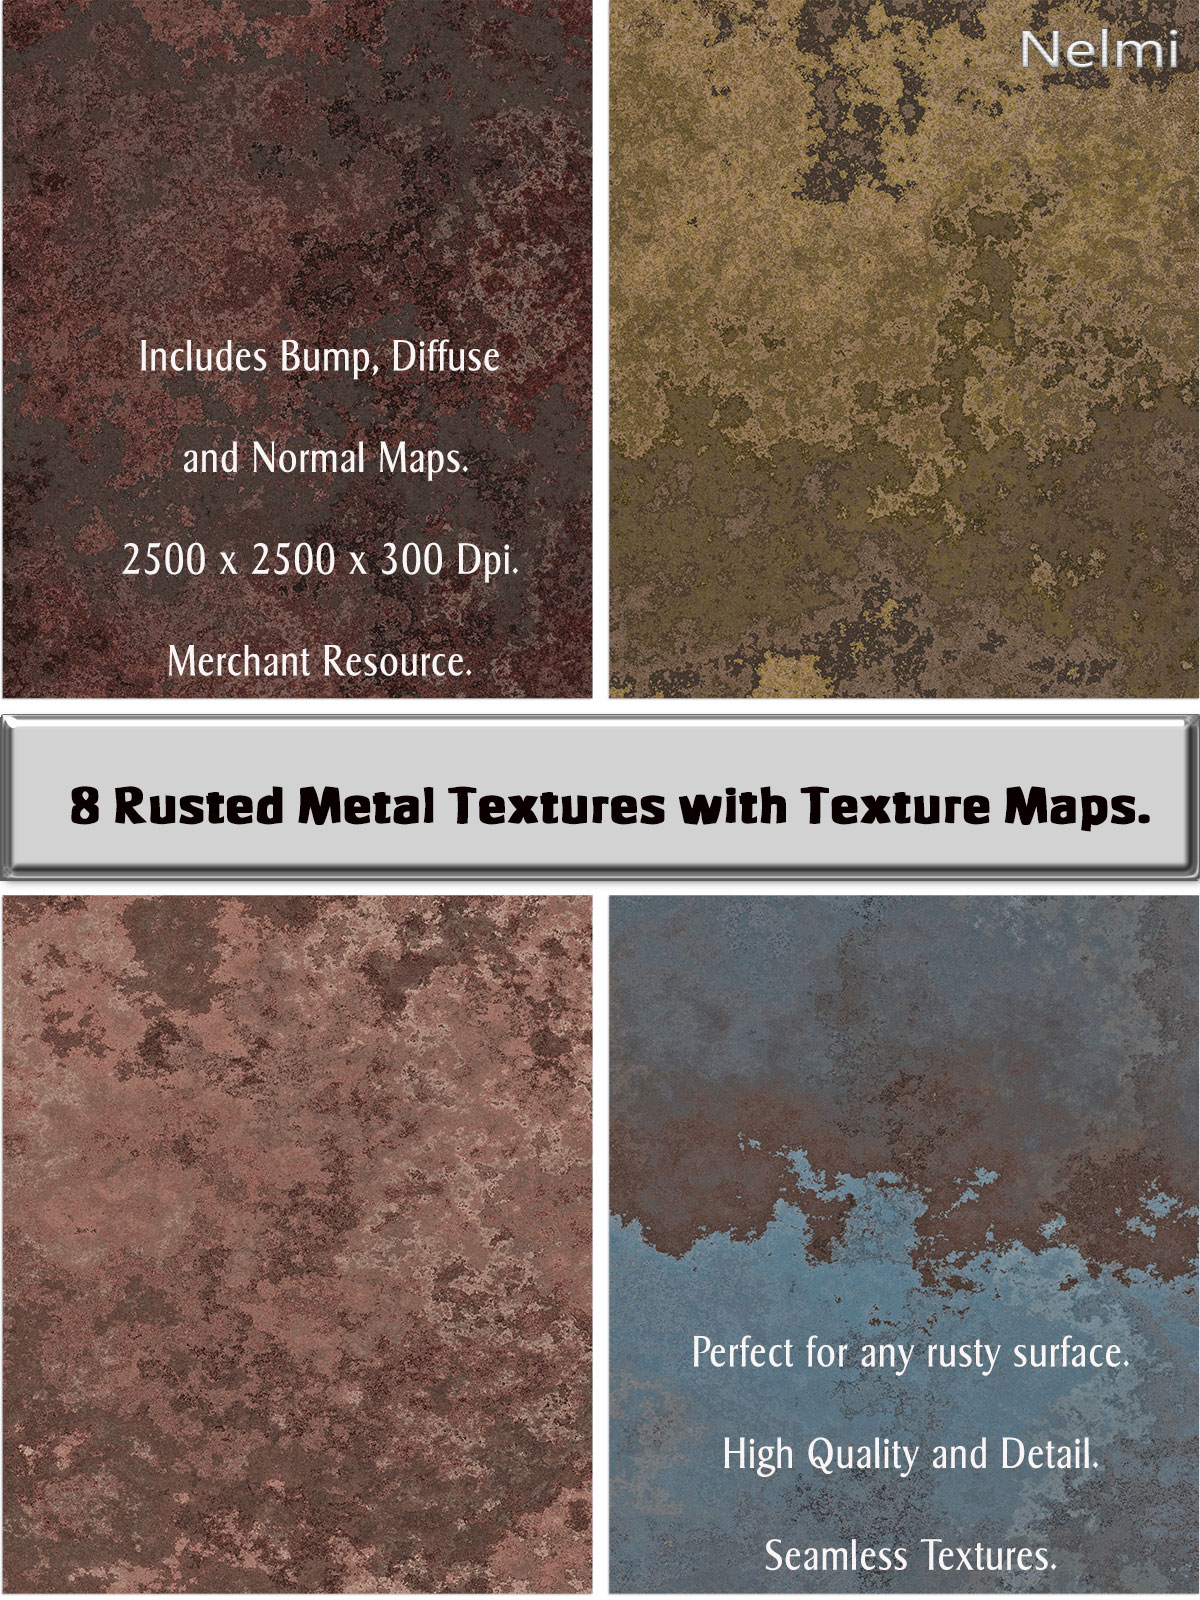 8 Seamless Rusty Metal Textures with Texture Maps - Merchant Resource